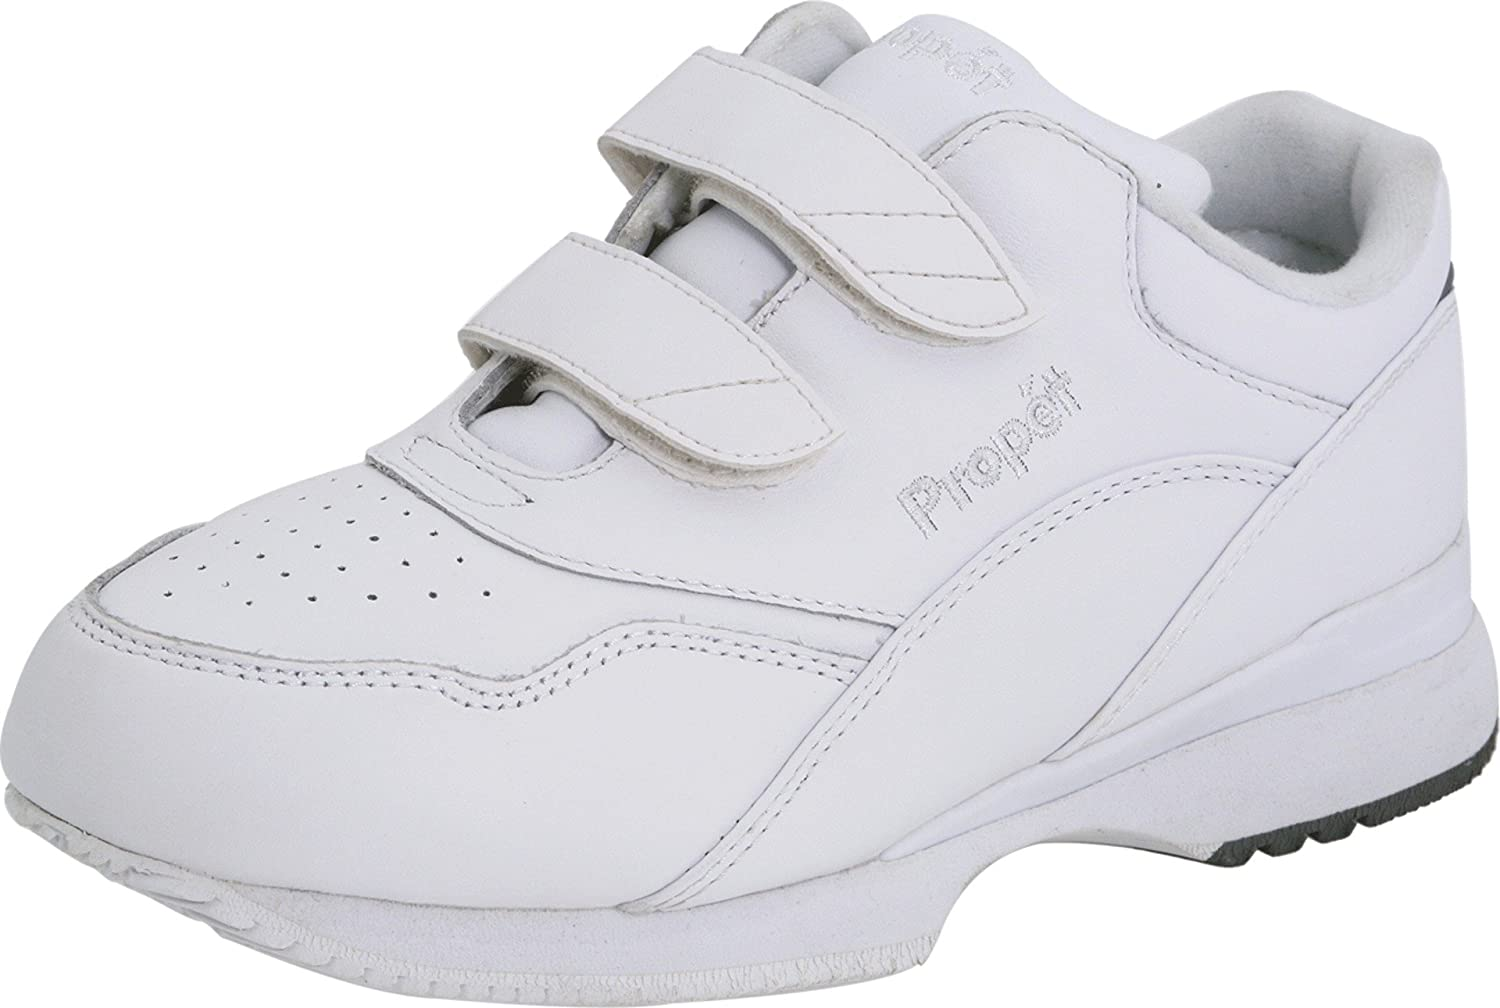 Propet Women's Tour Walker Strap Sneaker B000BO895S 10 N US|White